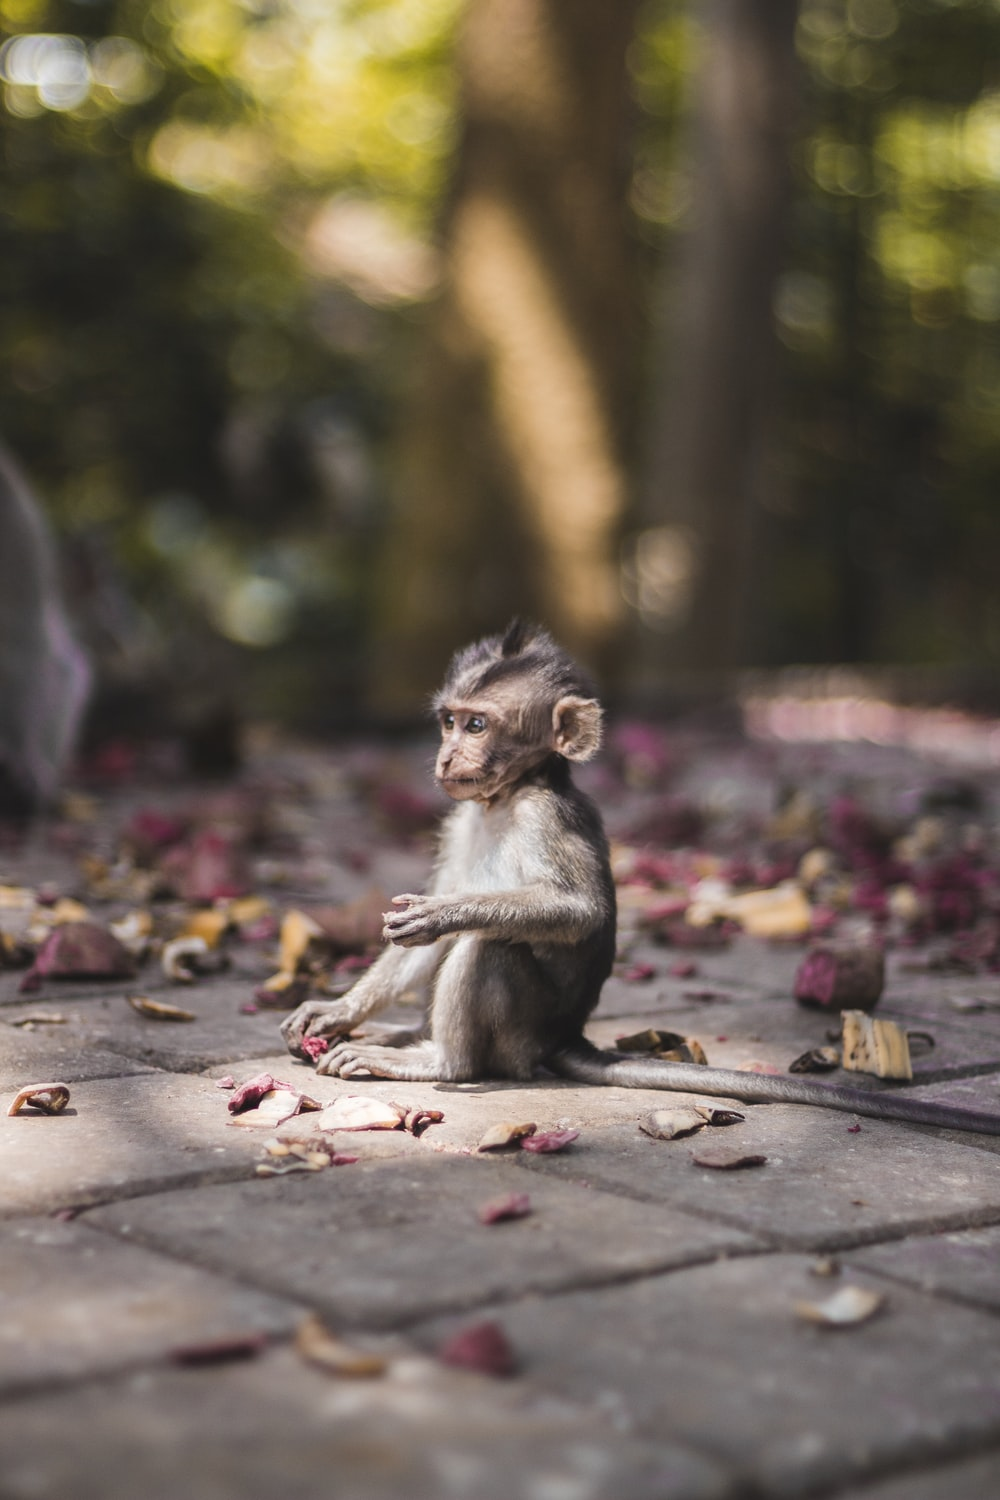 selective focus photography of brow monkey sitting on brick pavement